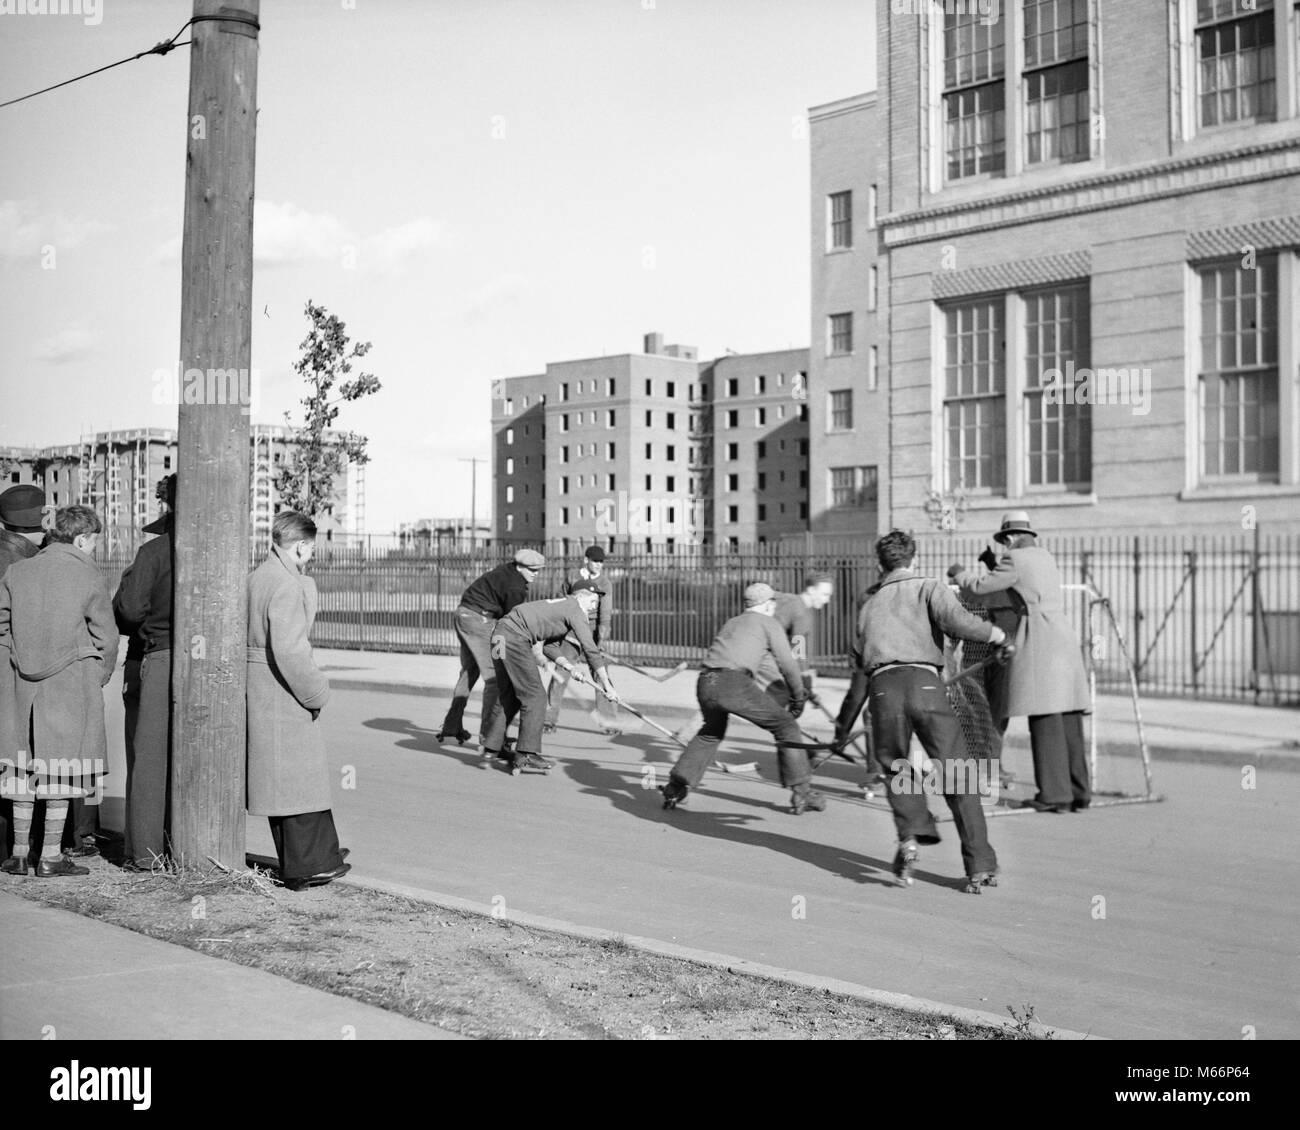 1930s GROUP TEEN BOYS PLAYING STREET HOCKEY IN BOROUGH OF QUEENS NEW YORK CITY USA - q44831 CPC001 HARS FULL-LENGTH - Stock Image